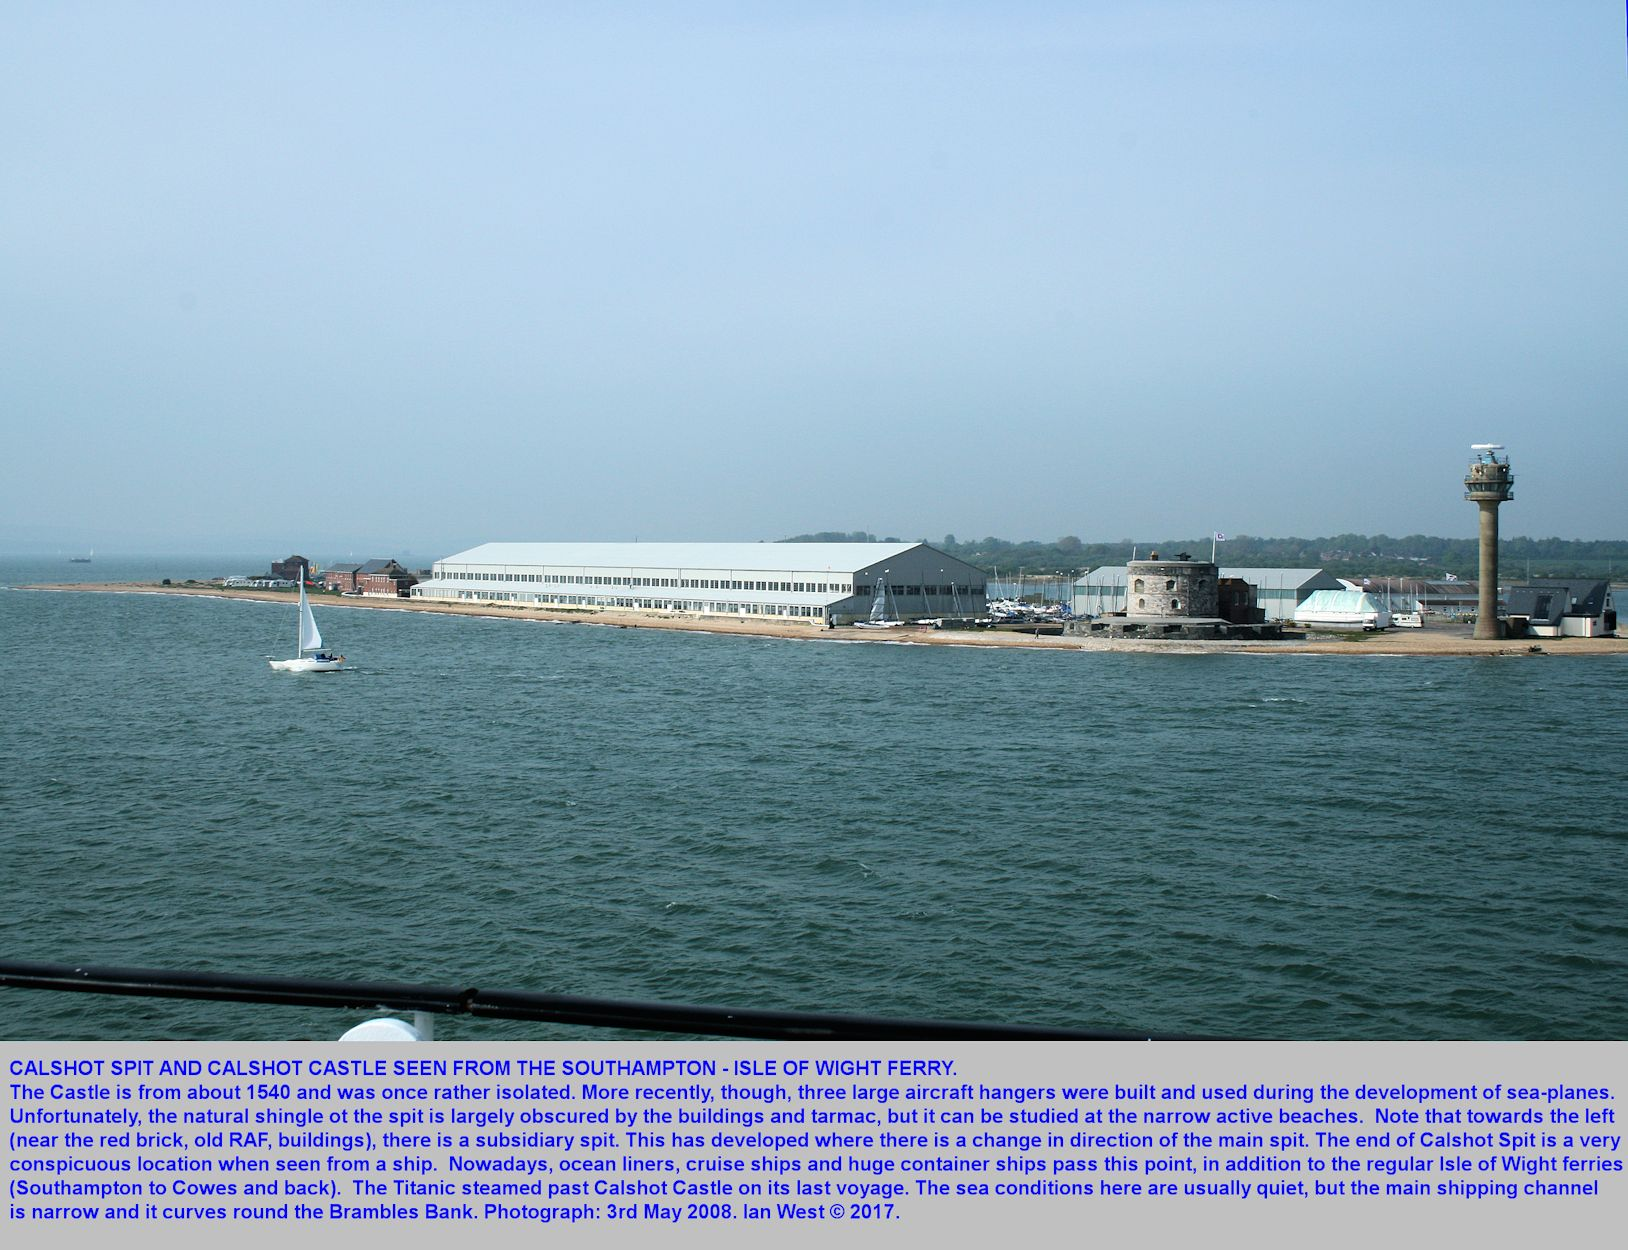 A view of Calshot Spit from a ship